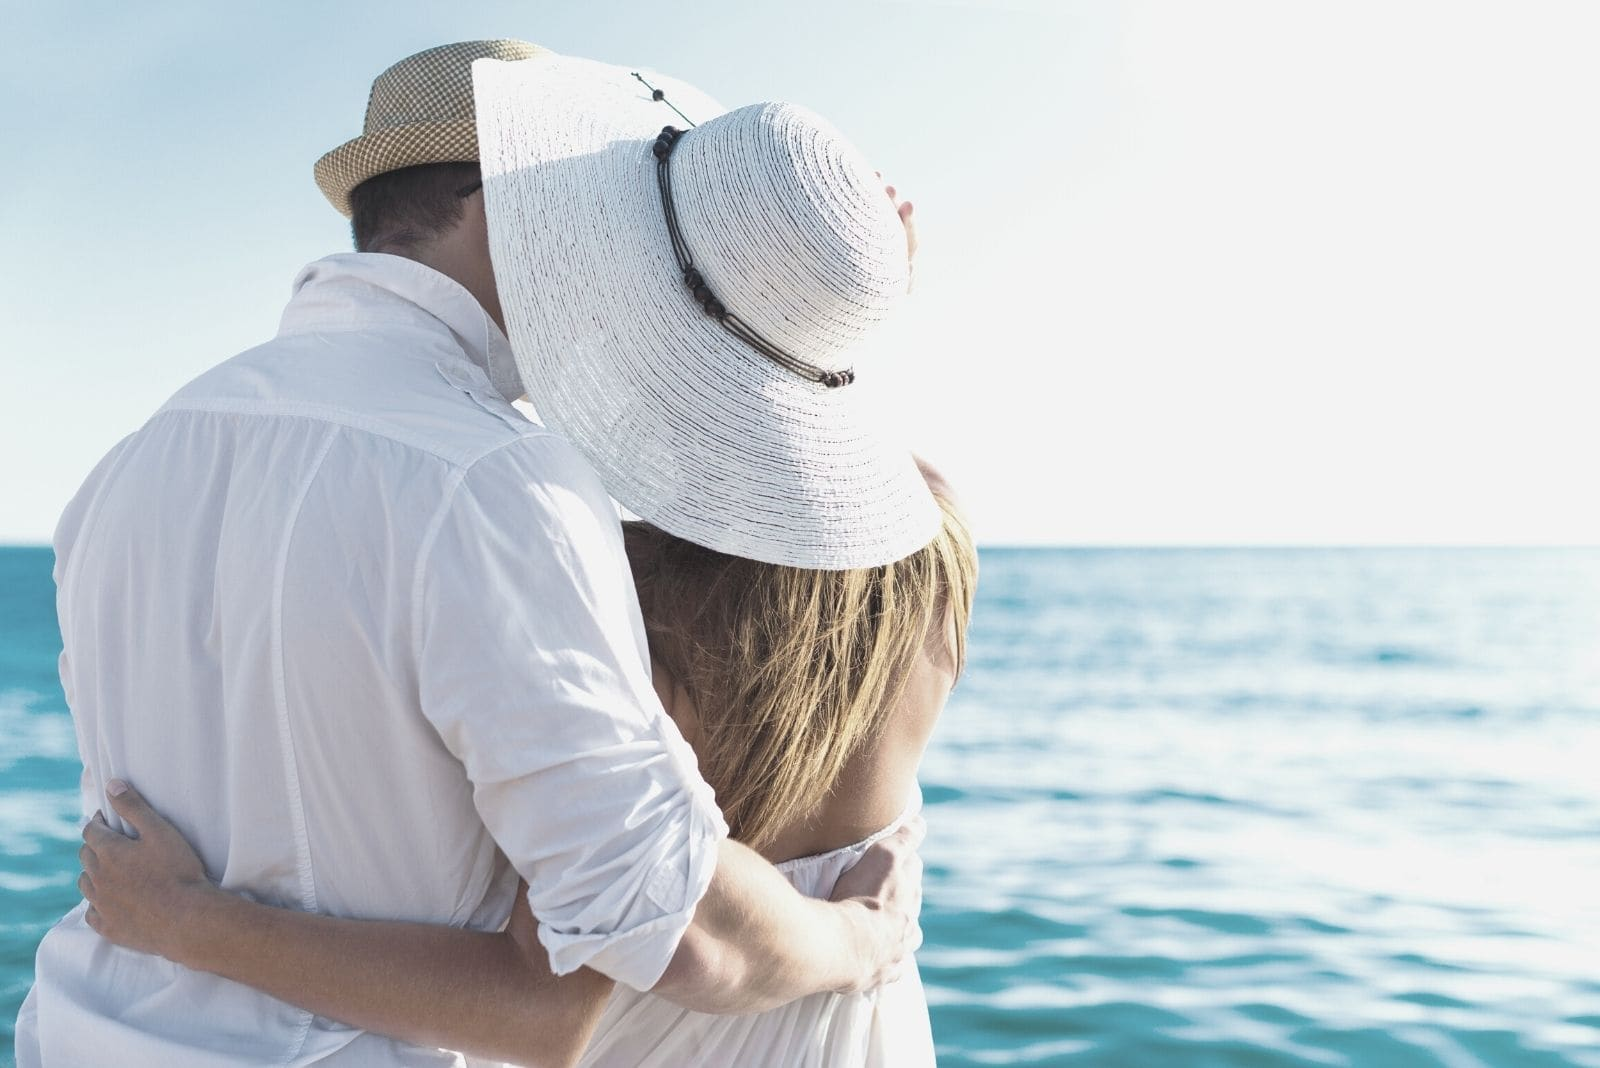 happy couple hugging facing the sea in a vacation to a tropical place